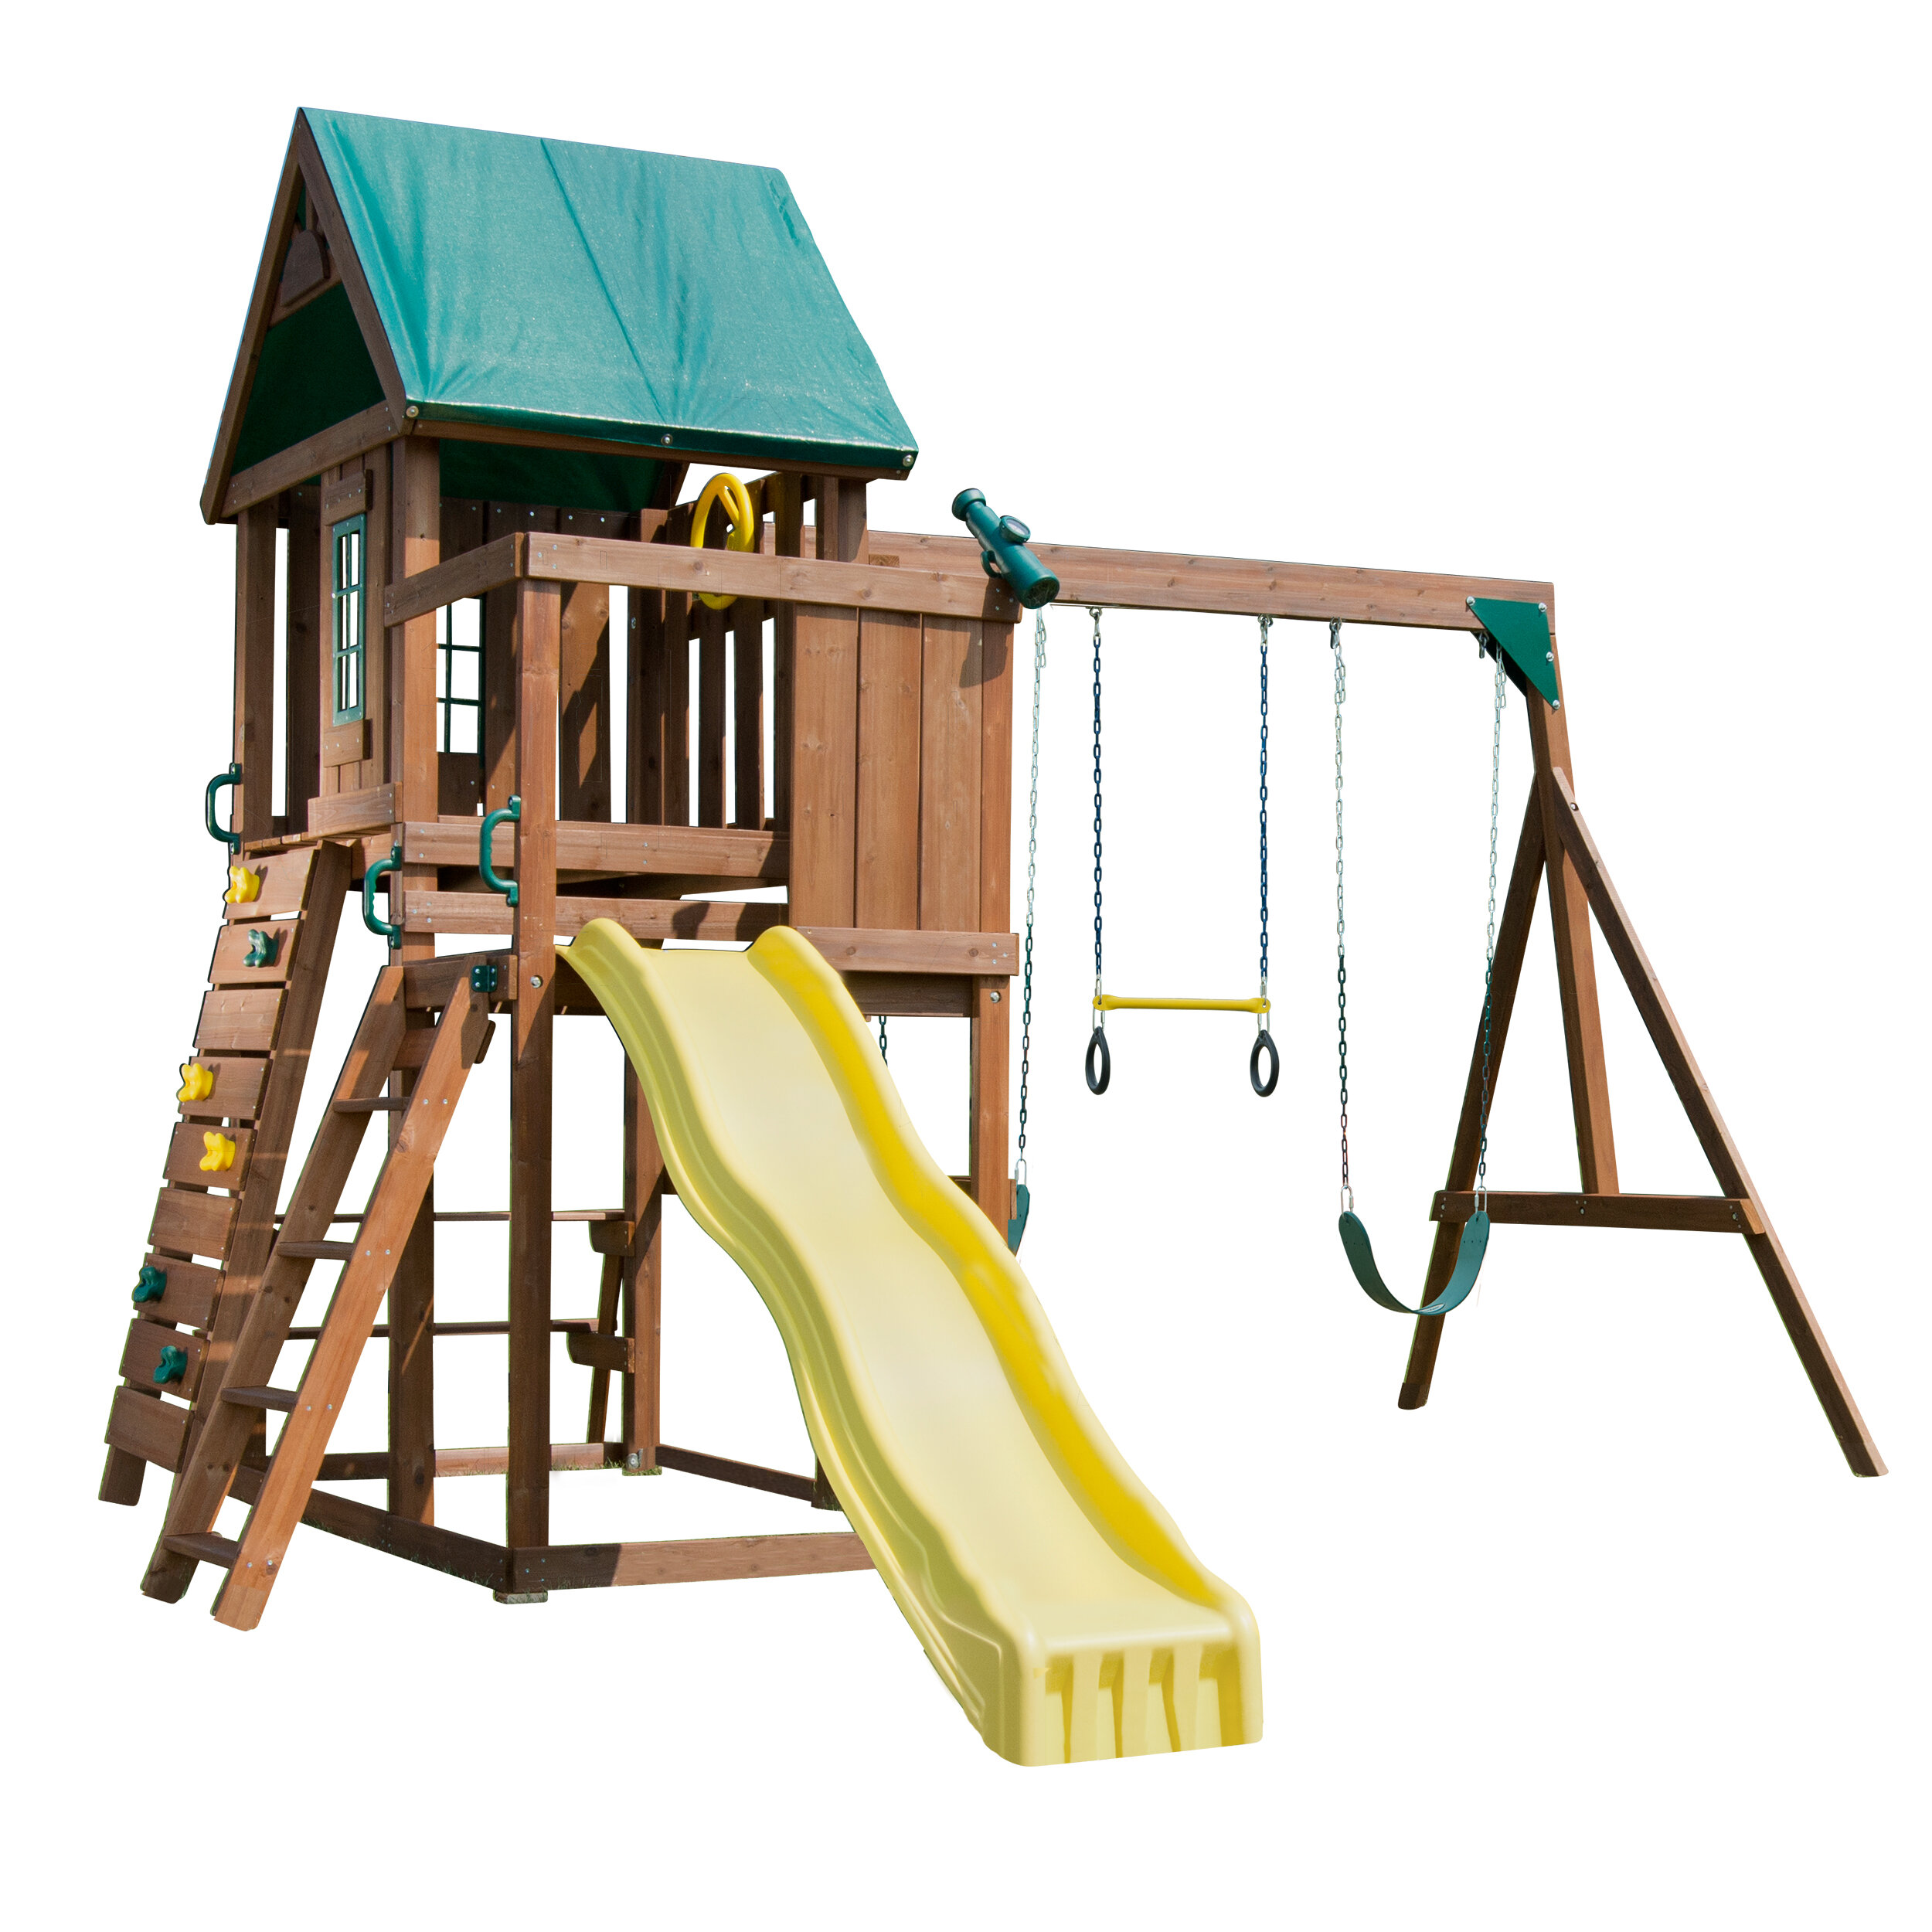 zq wooden sets playset mckinley lifetime playsets posh size large gorgeous swing of clearance outdoor costco in set playhouses